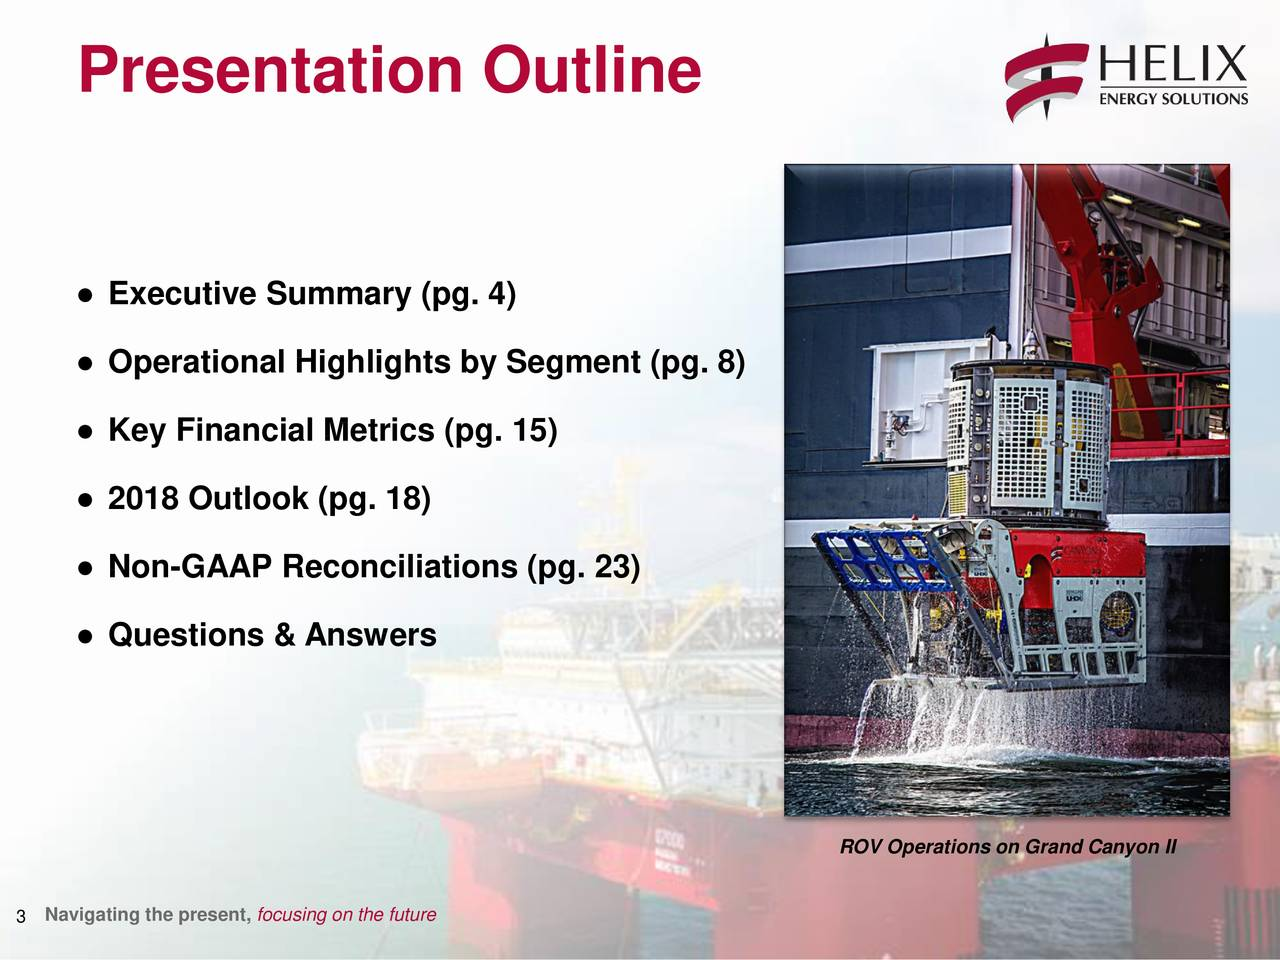 ● Executive Summary (pg. 4) ● Operational Highlights by Segment (pg. 8) ● Key Financial Metrics (pg. 15) ● 2018 Outlook (pg. 18) ● Non-GAAP Reconciliations (pg. 23) ● Questions & Answers ROV Operations on Grand Canyon II 3 Navigating the present, focusing on the future